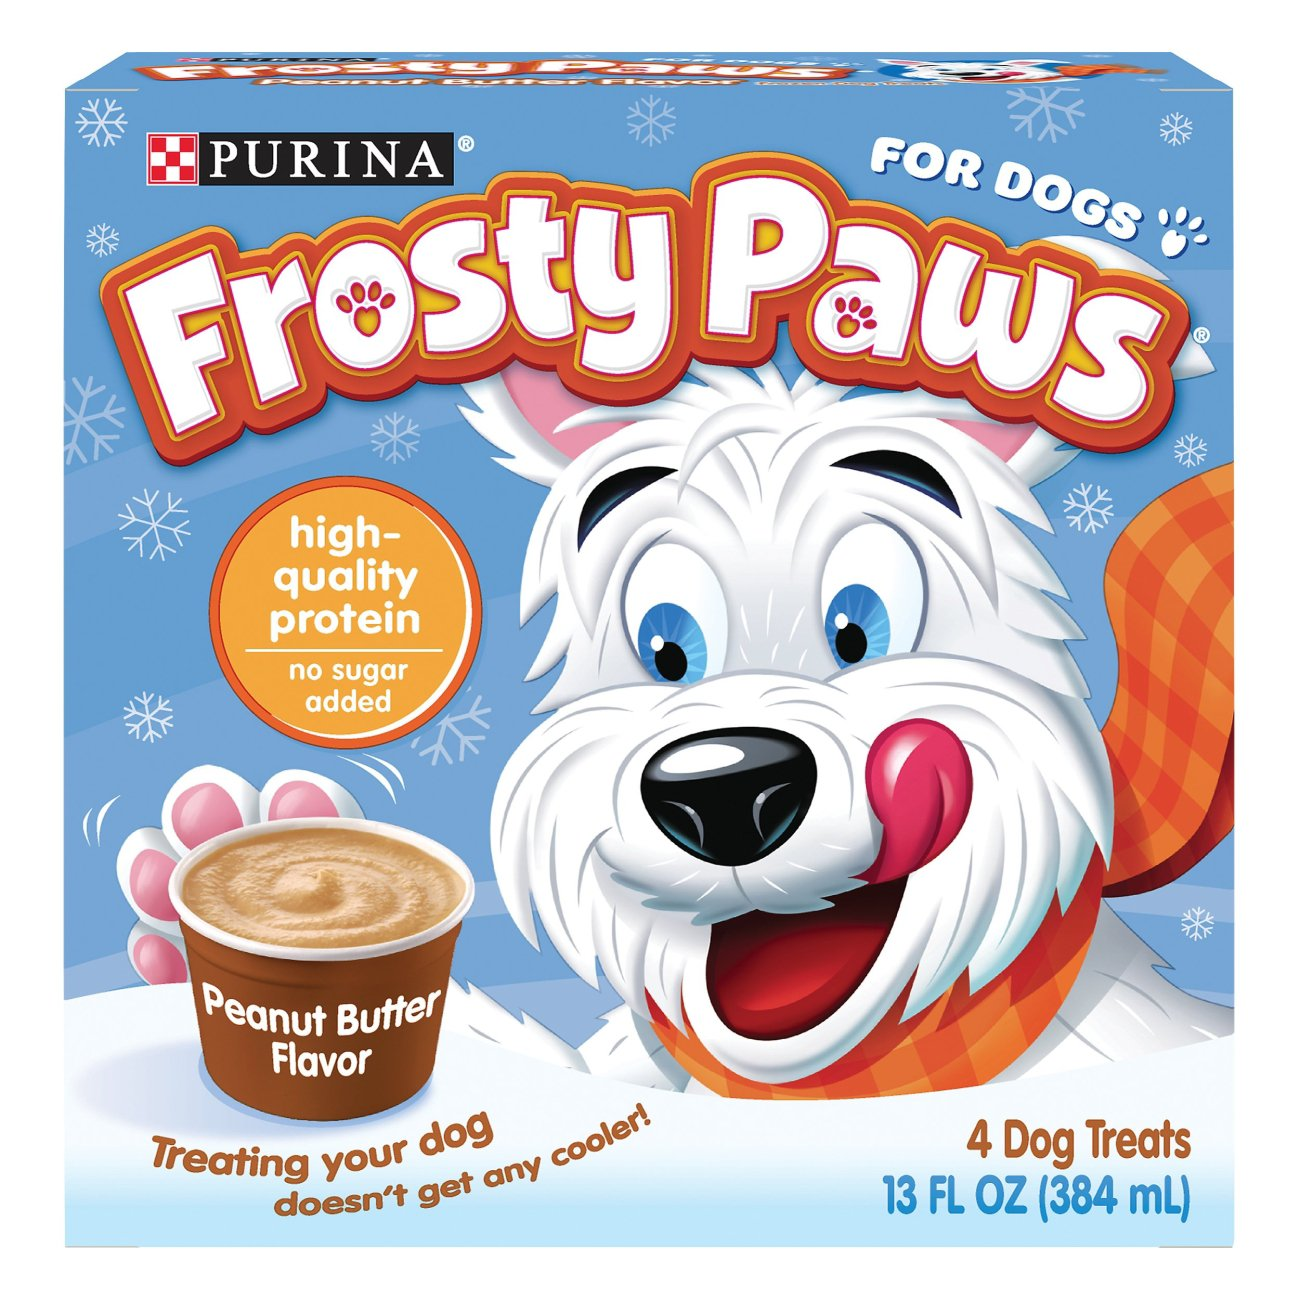 Purina Frosty Paws Peanut Butter Flavor Frozen Dog Treats Shop Dogs At H E B